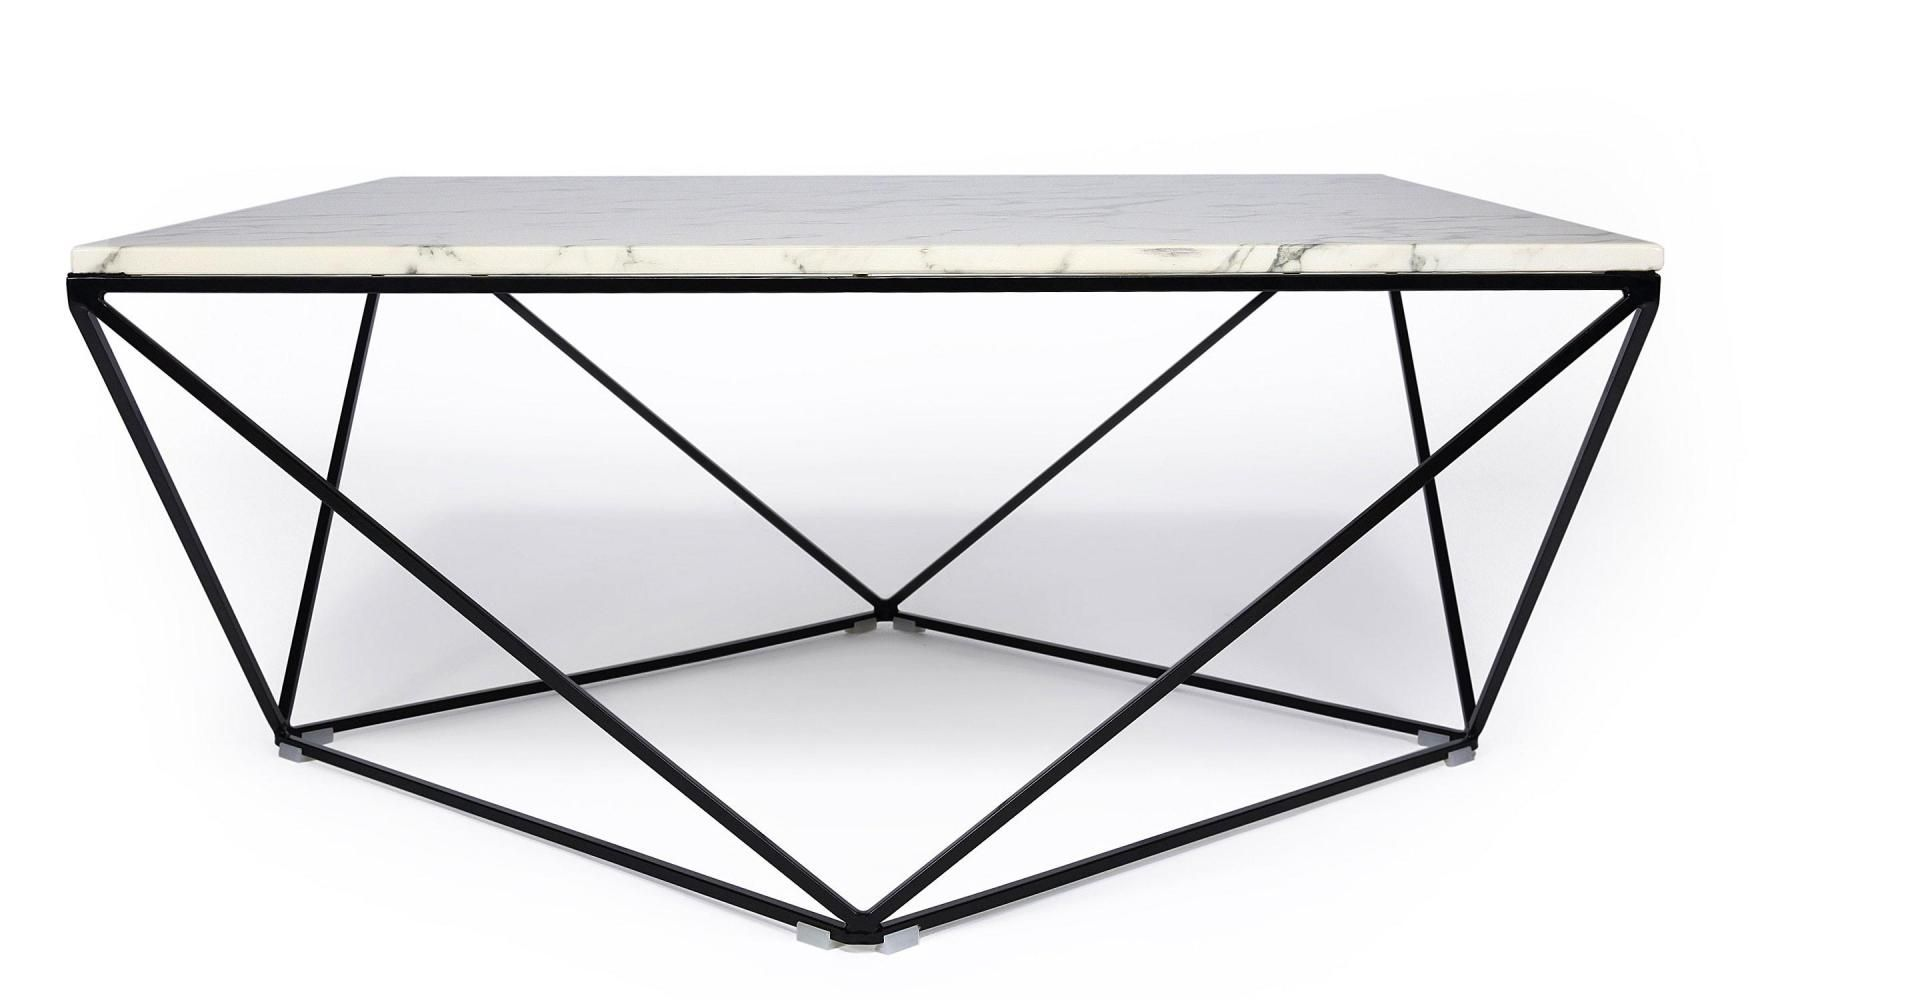 Table Salon Marbre Table Basse Design Façon Marbre Blanc Avec Piètement En Fer